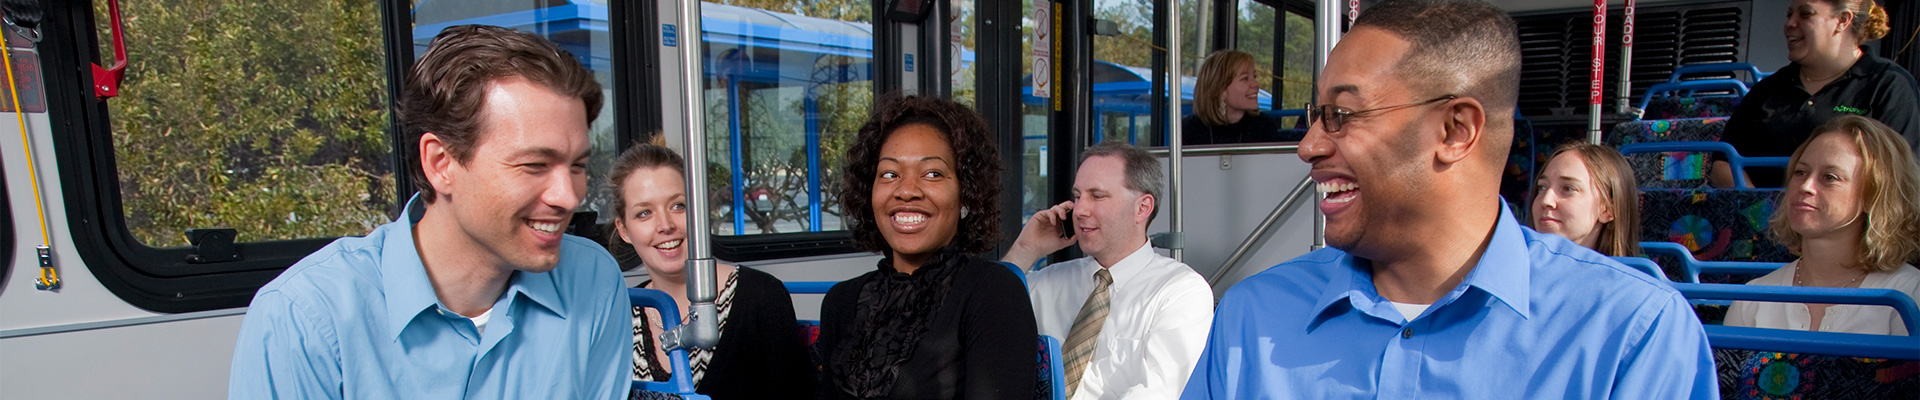 Riders laughing and talking onboard the bus